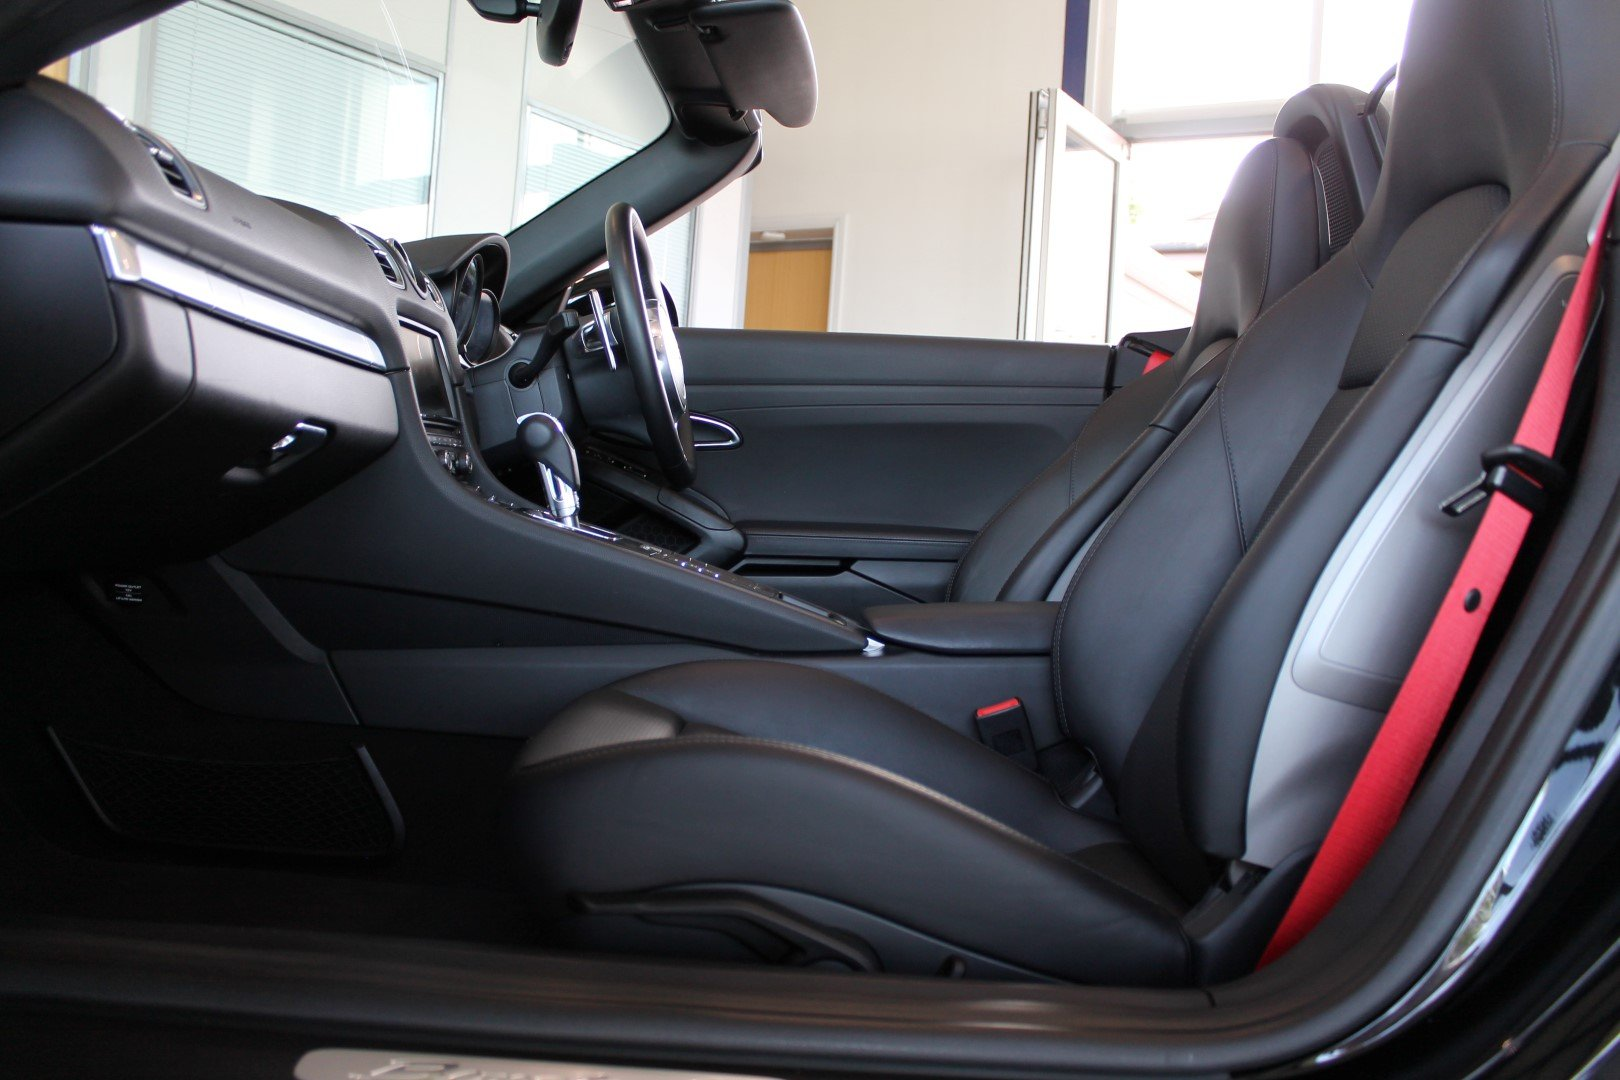 2015 Boxster (981) S 3.4 PDK For Sale (picture 6 of 6)